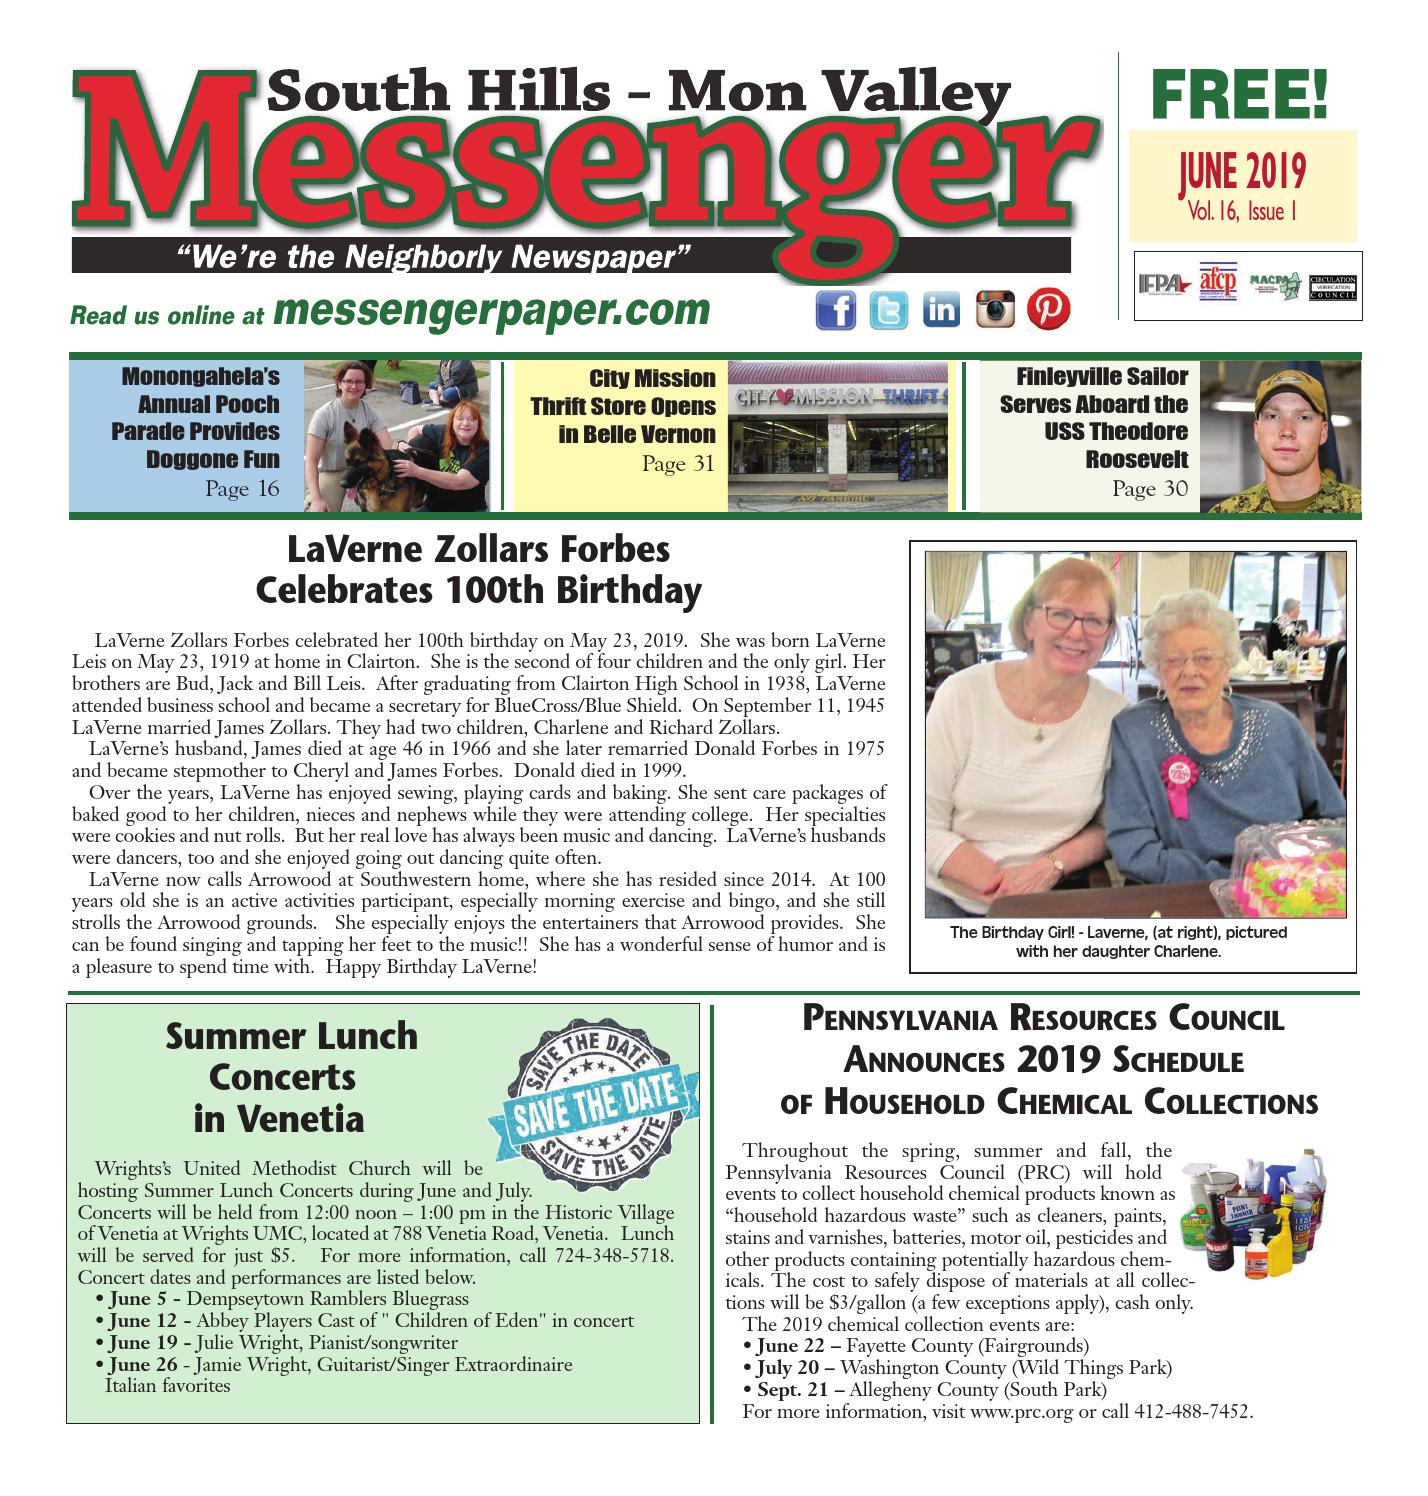 South Hills Mon Valley Messenger June 2019 by South Hills